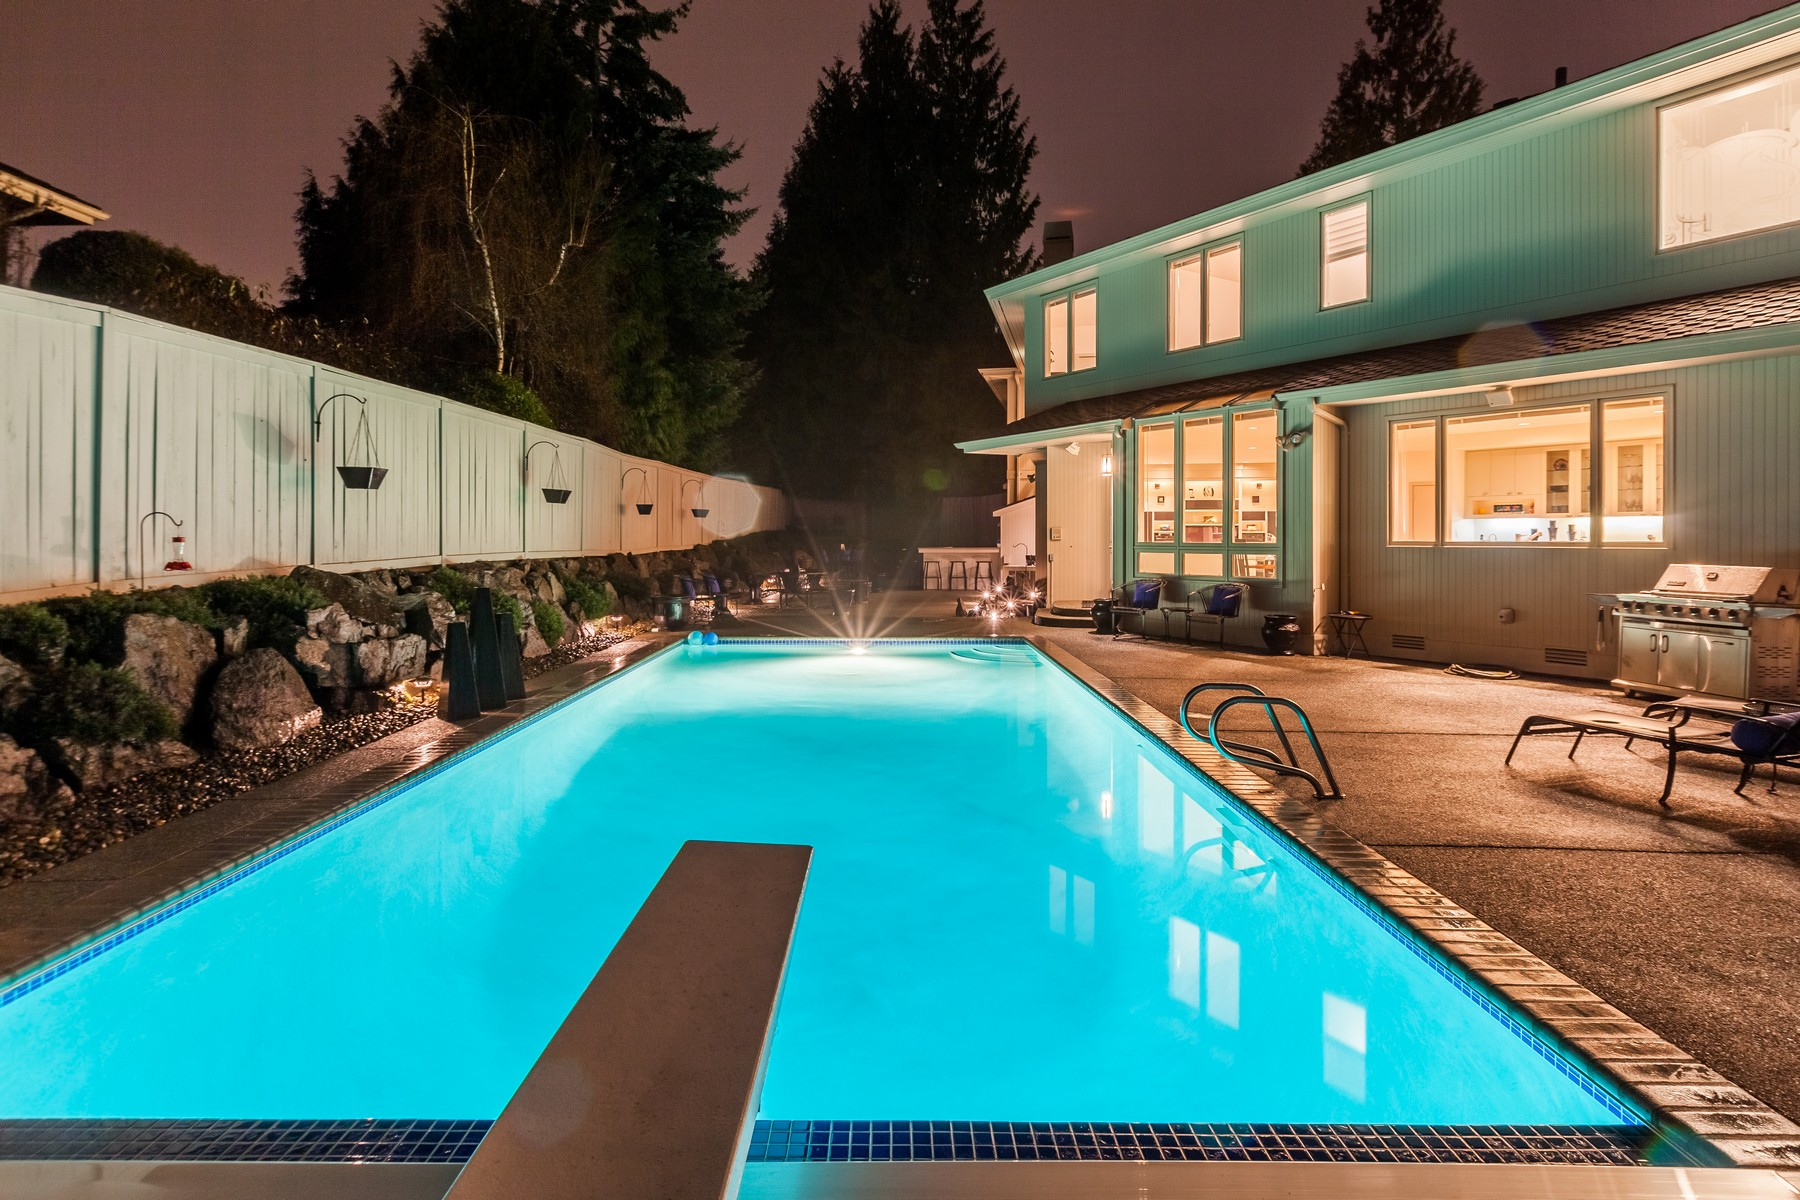 Single Family Home for Sale at Contemporary Montreux Home 5317 Gran Paradiso Place NW Montreux, Issaquah, Washington, 98027 United States